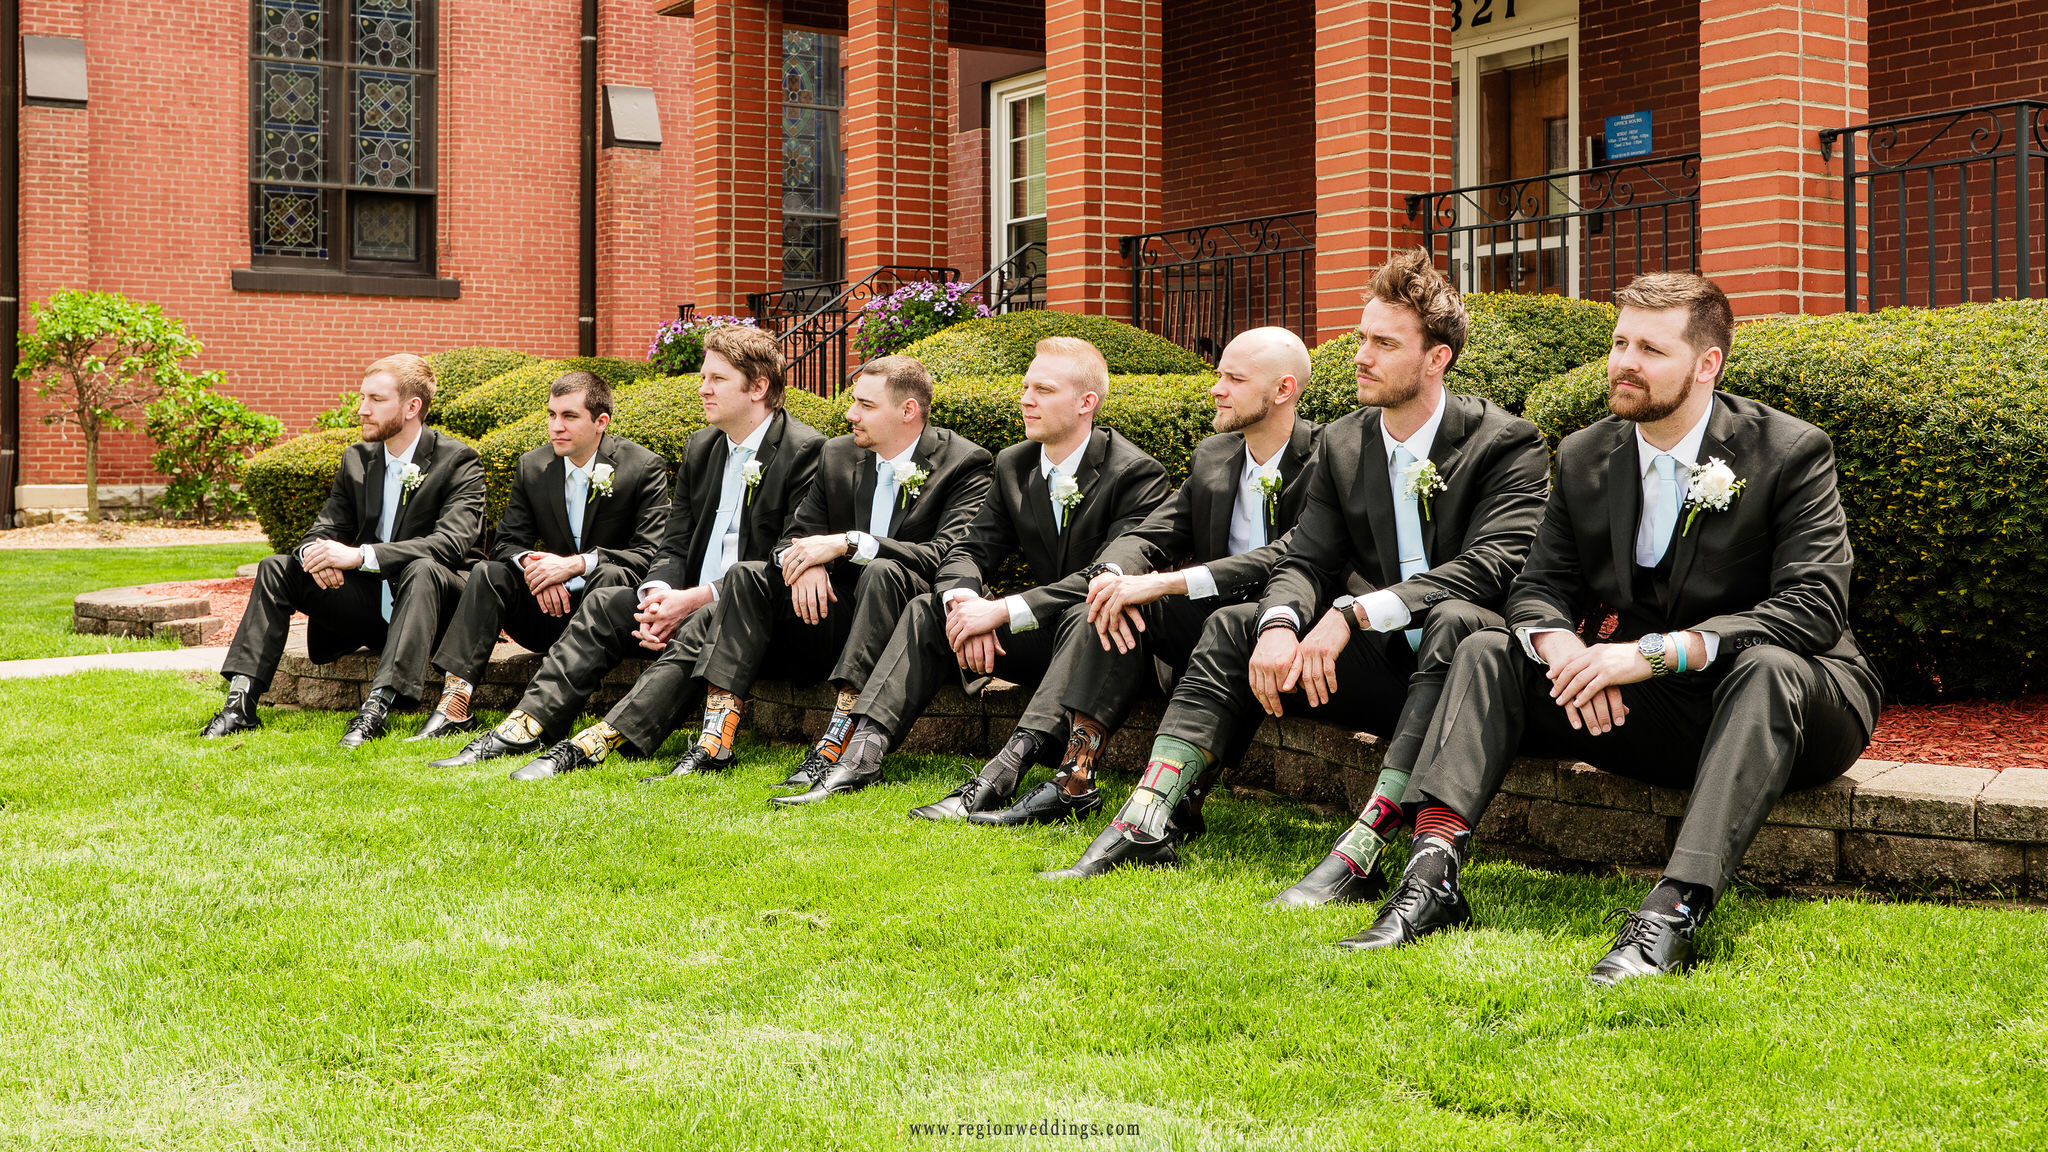 The groomsmen reveal their socks at Saint Mary's Catholic Church in Crown Point, Indiana.